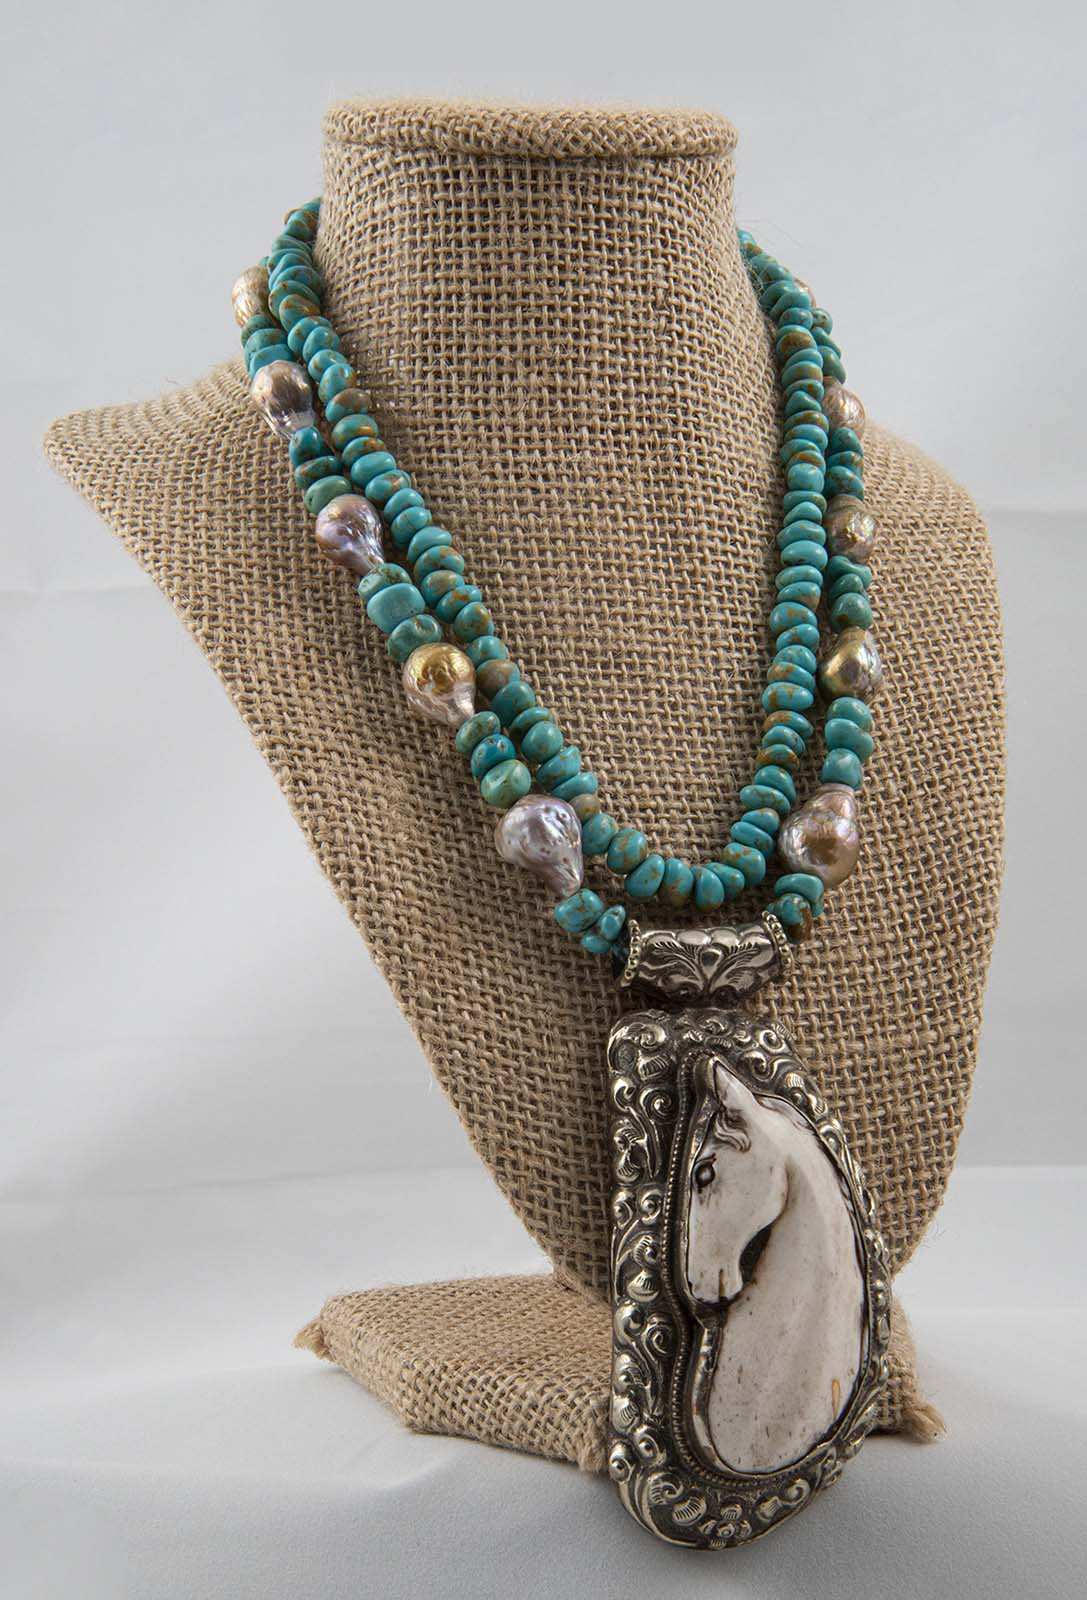 Baroque pearls on Sonoran turquoise two-strand necklace; 16 inch.